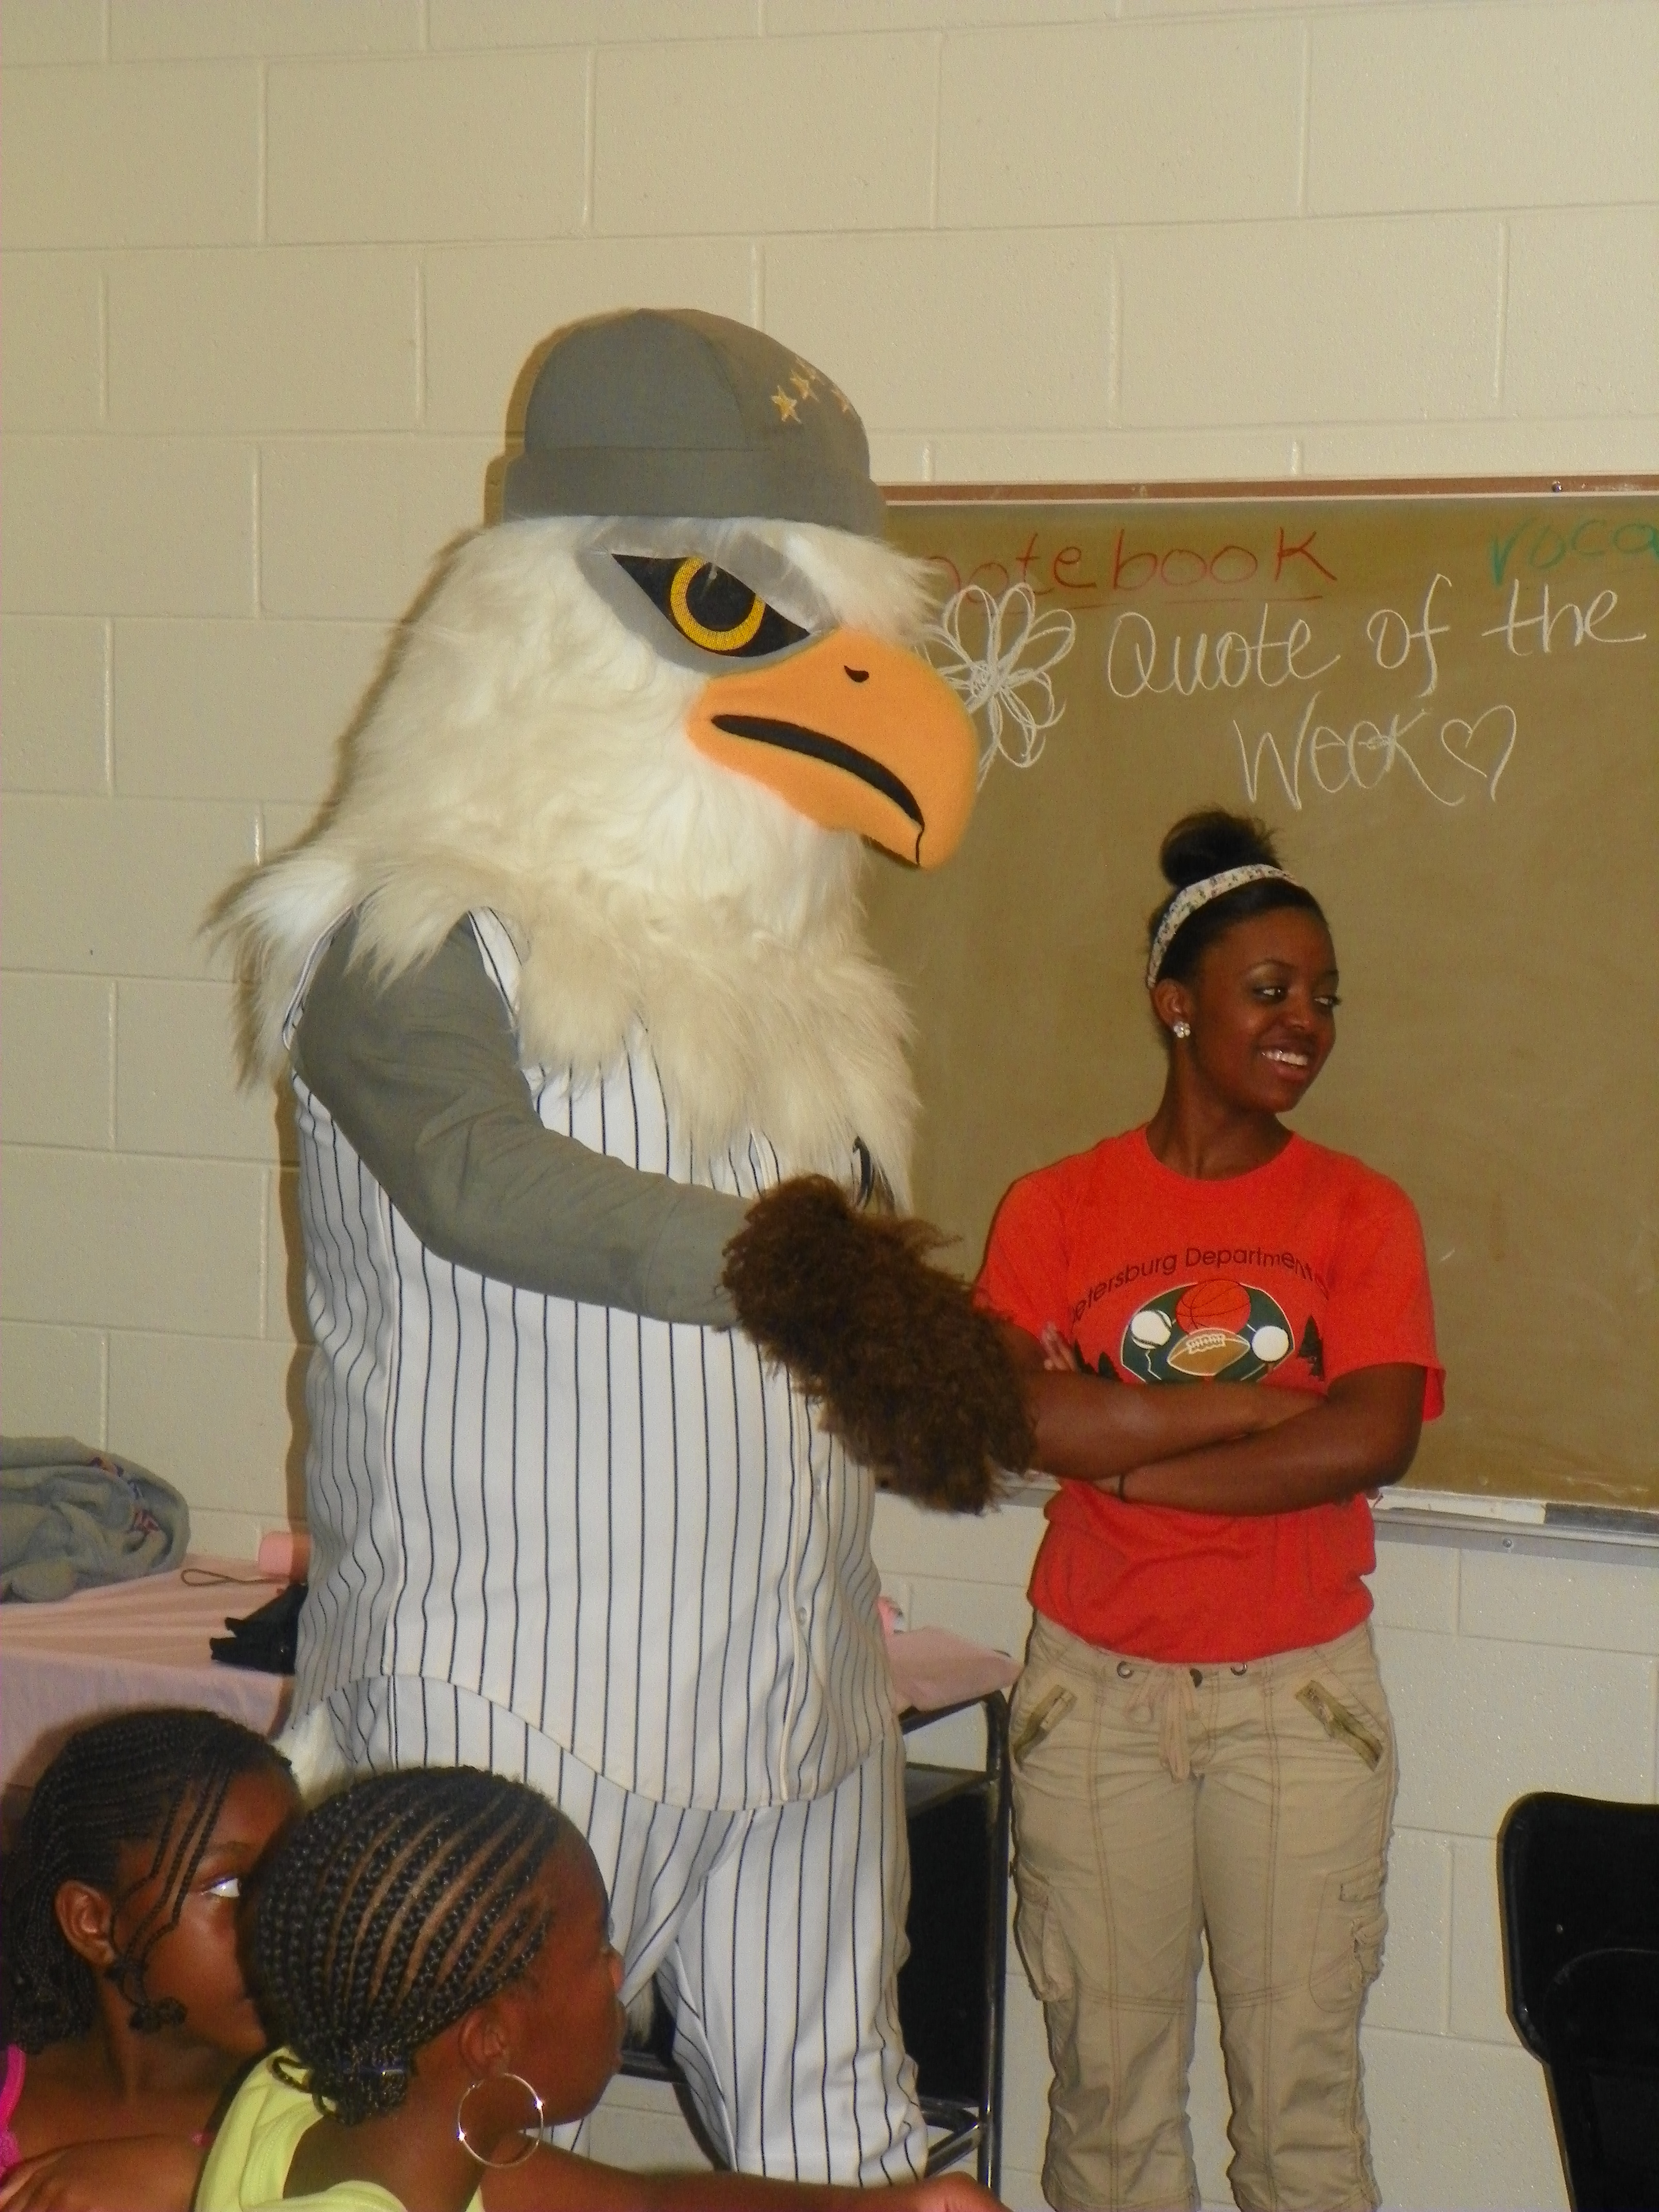 Petersburg Generals Mascot - Peter S. Bird